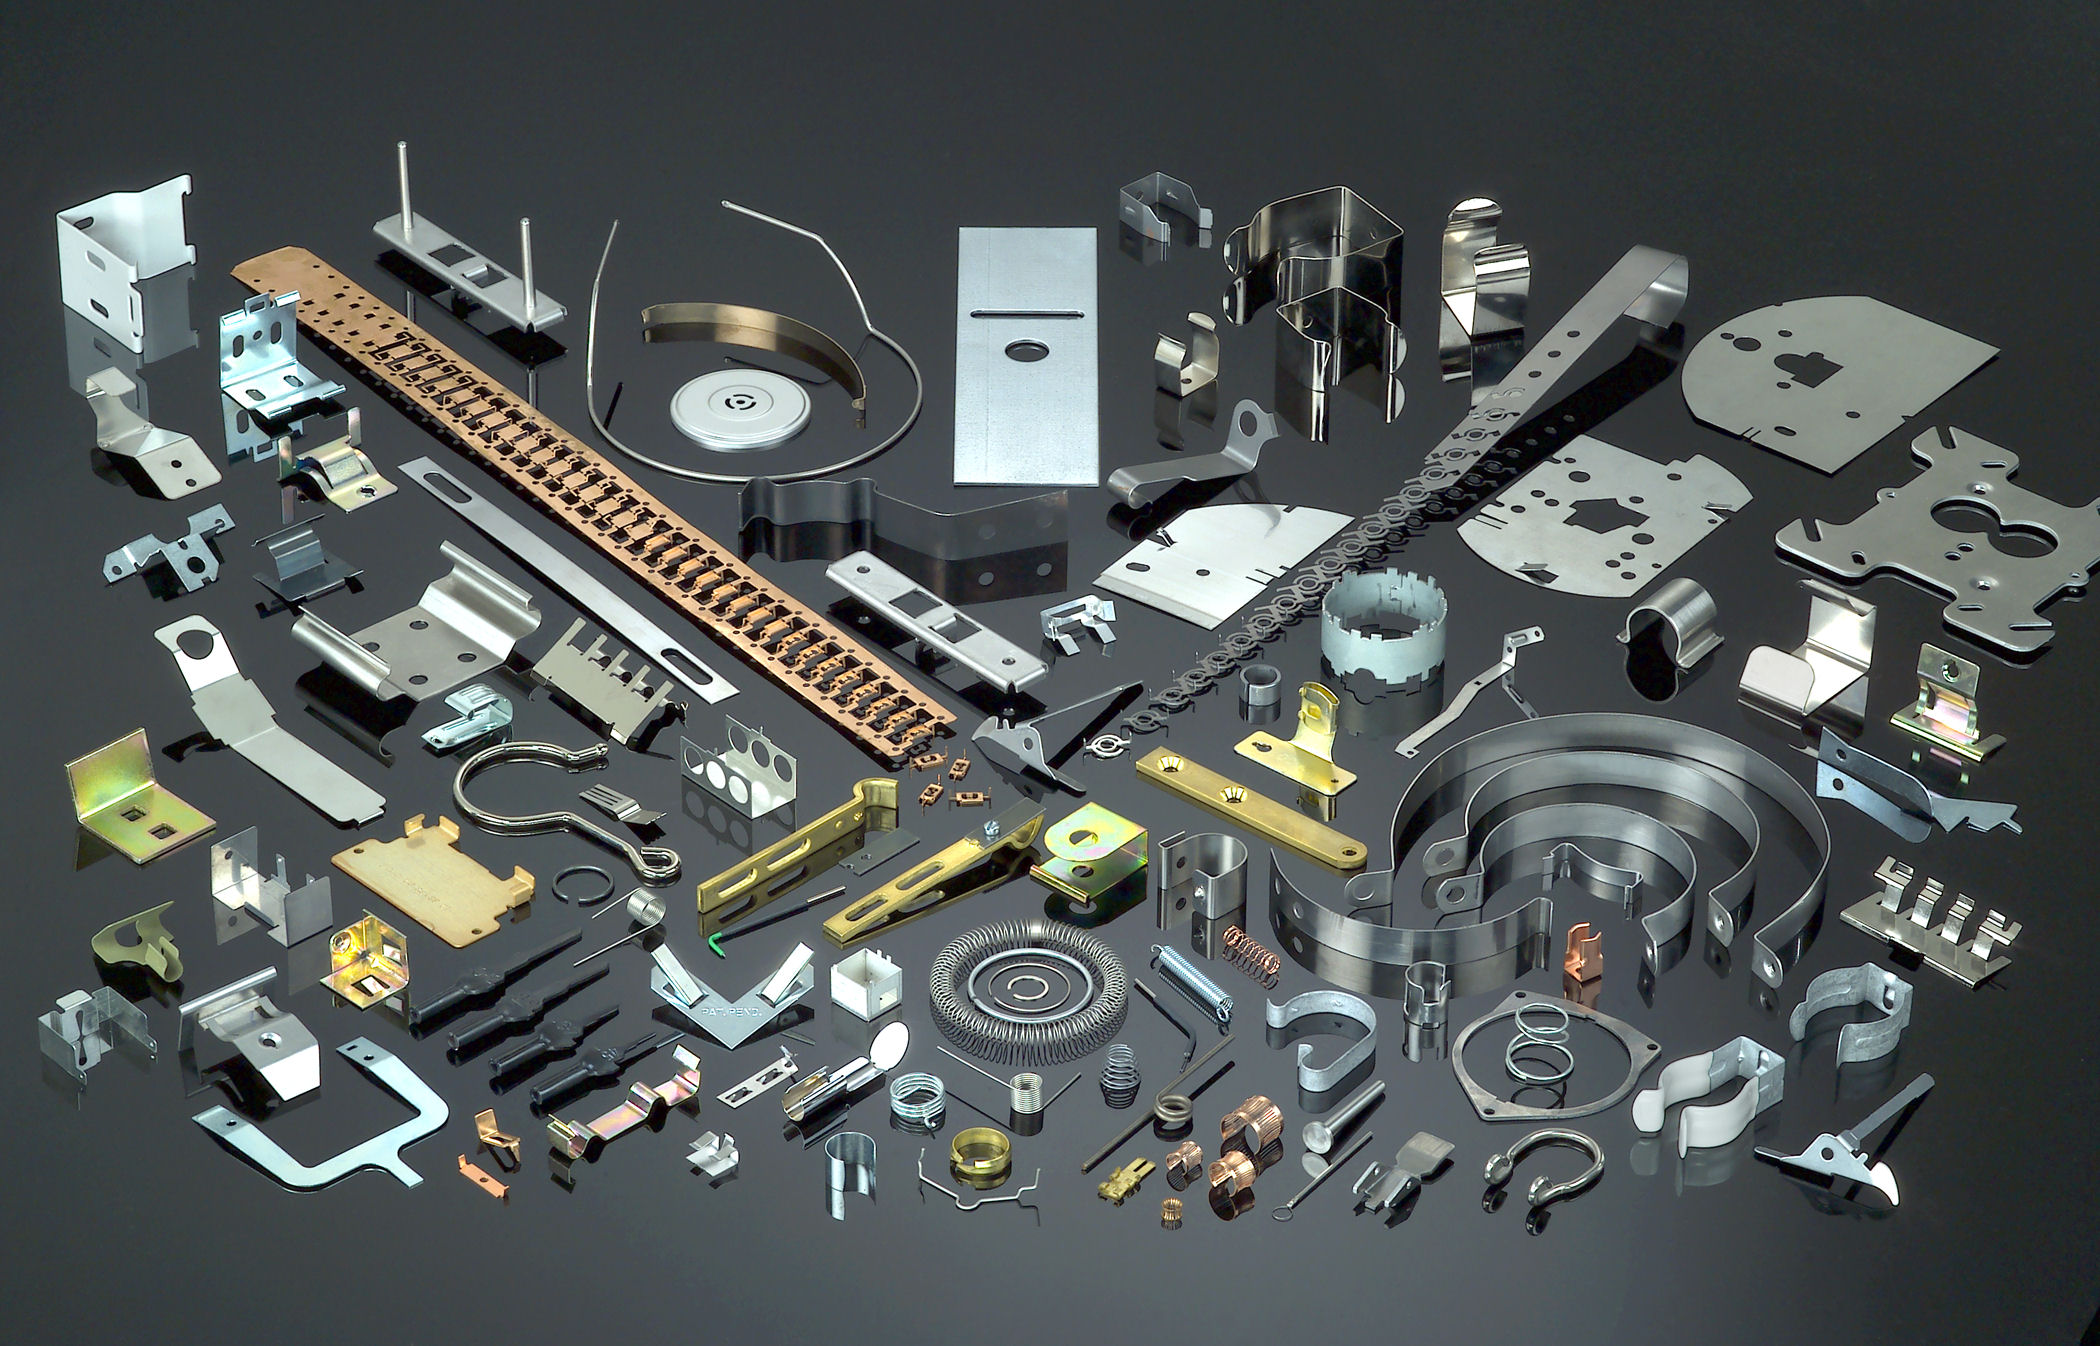 All parts Stamping, Clips, Springs, Assemblies